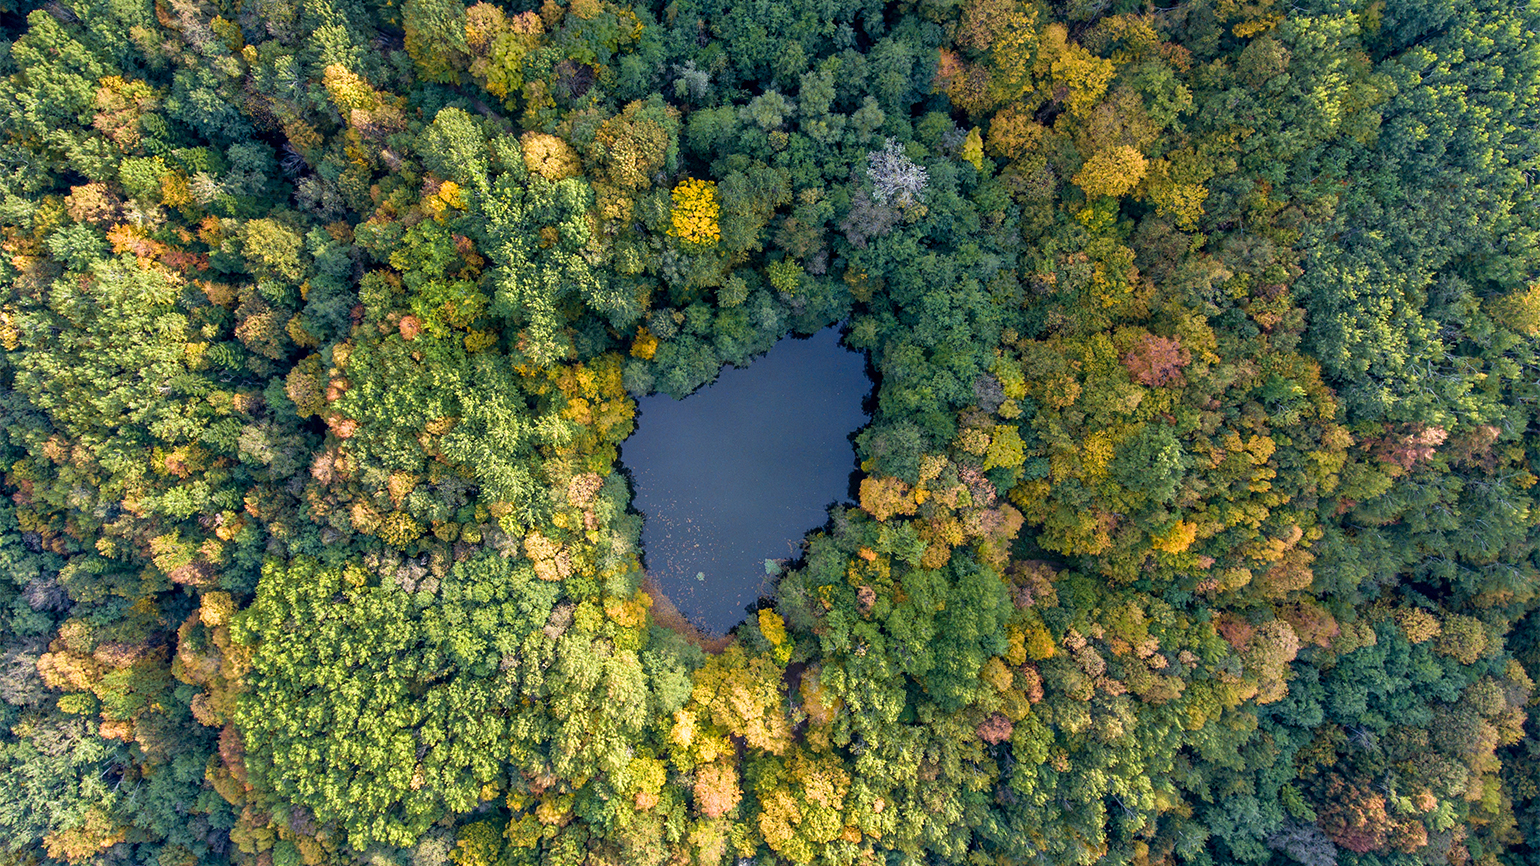 An aerial view of a lush forest